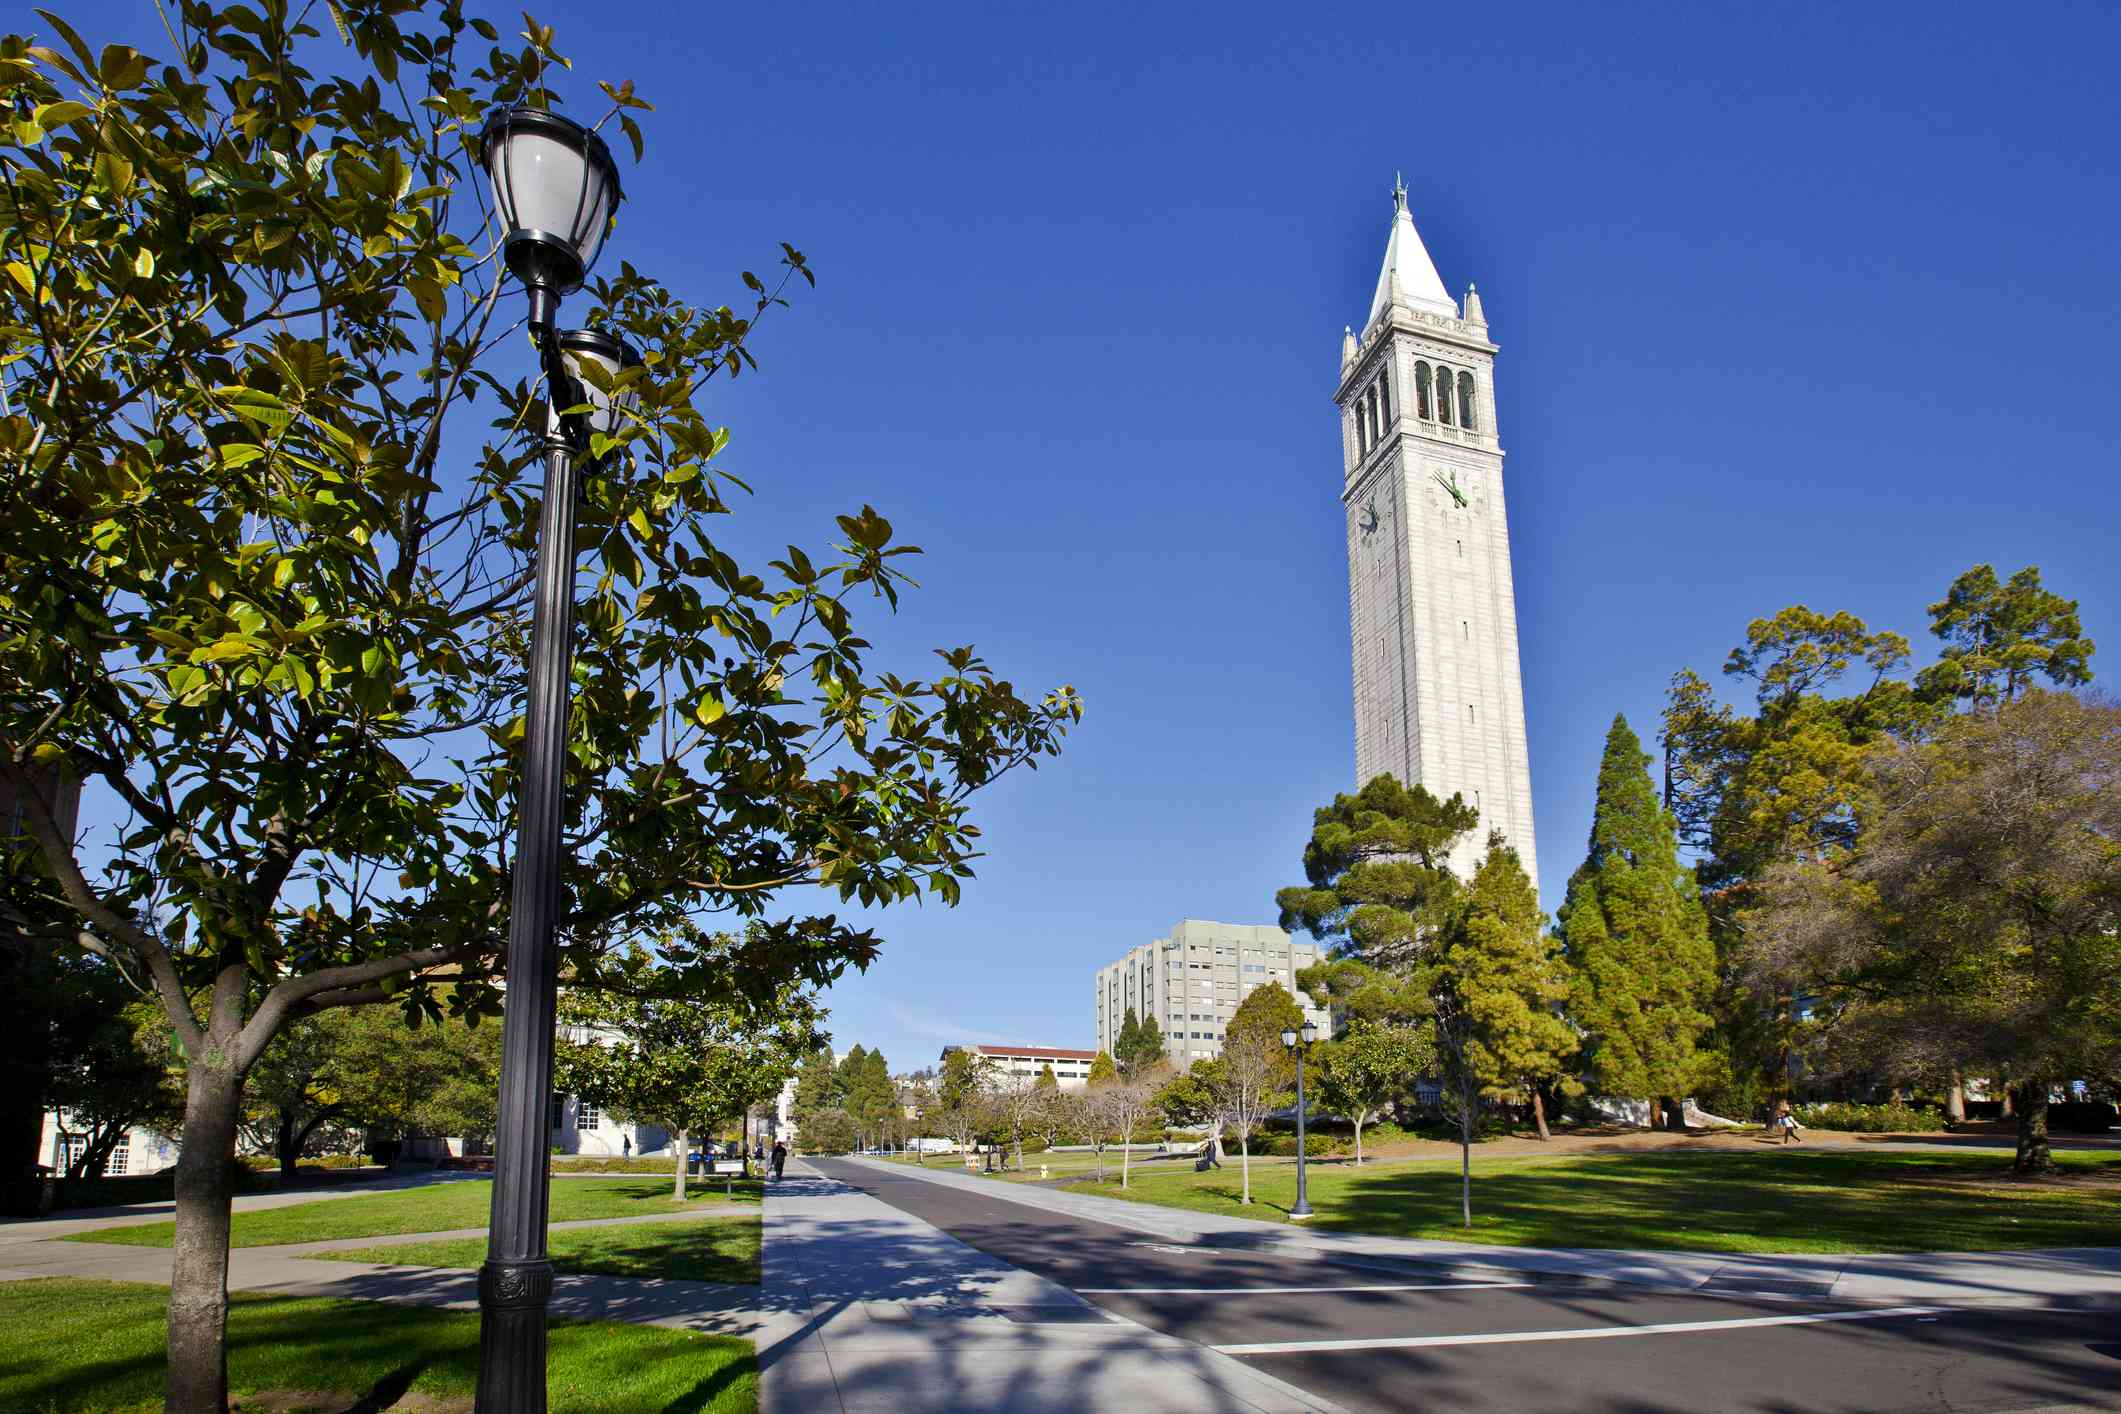 The iconic Sather Tower on UC Berkeley's campus